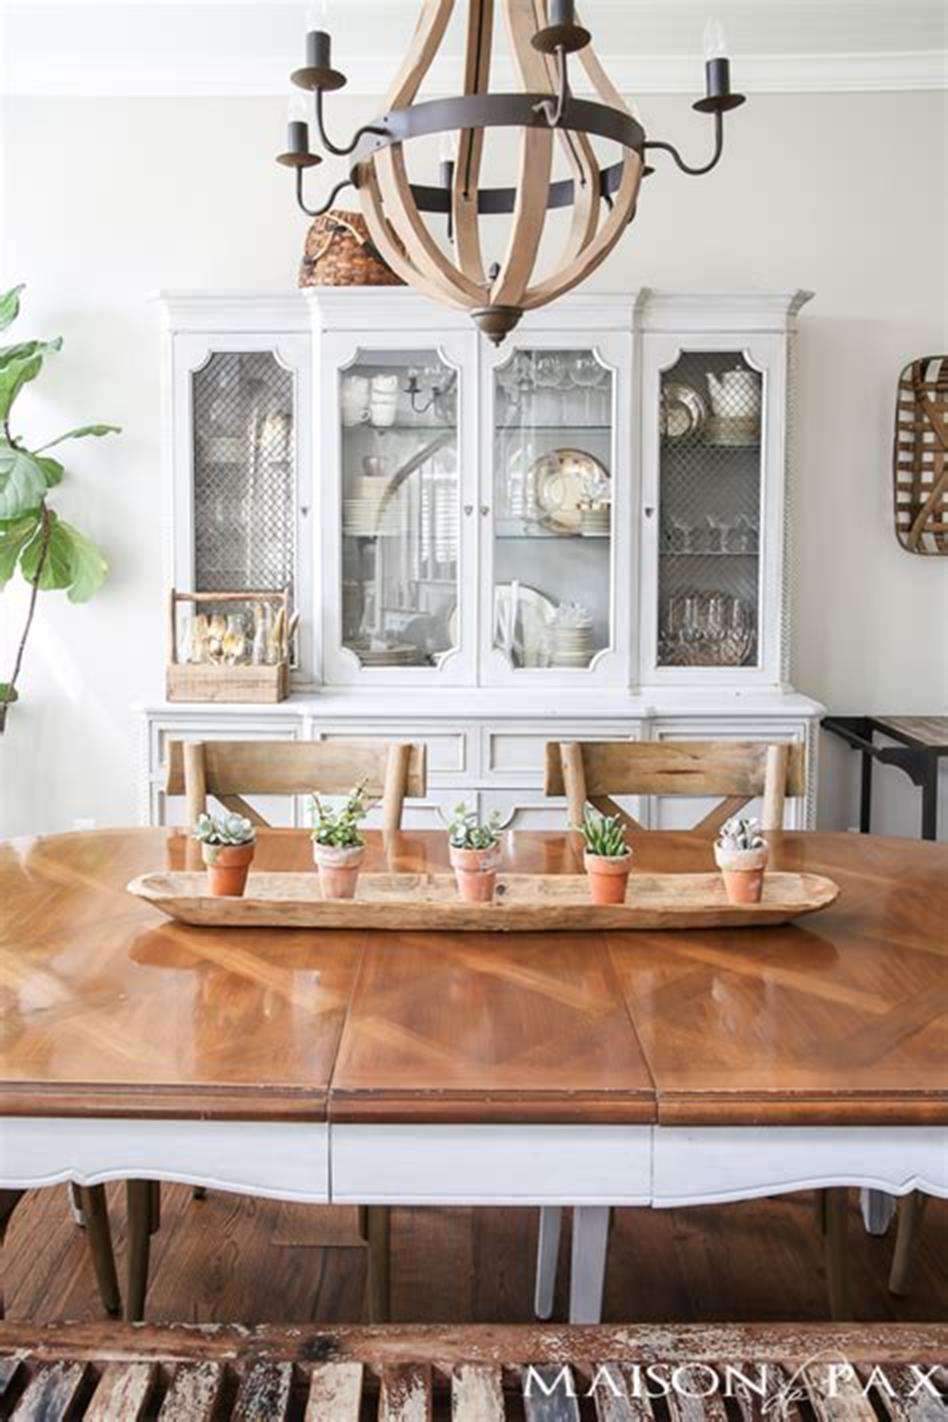 35 Stunning Spring Kitchen and Dining Room Decorating Ideas 2019 20